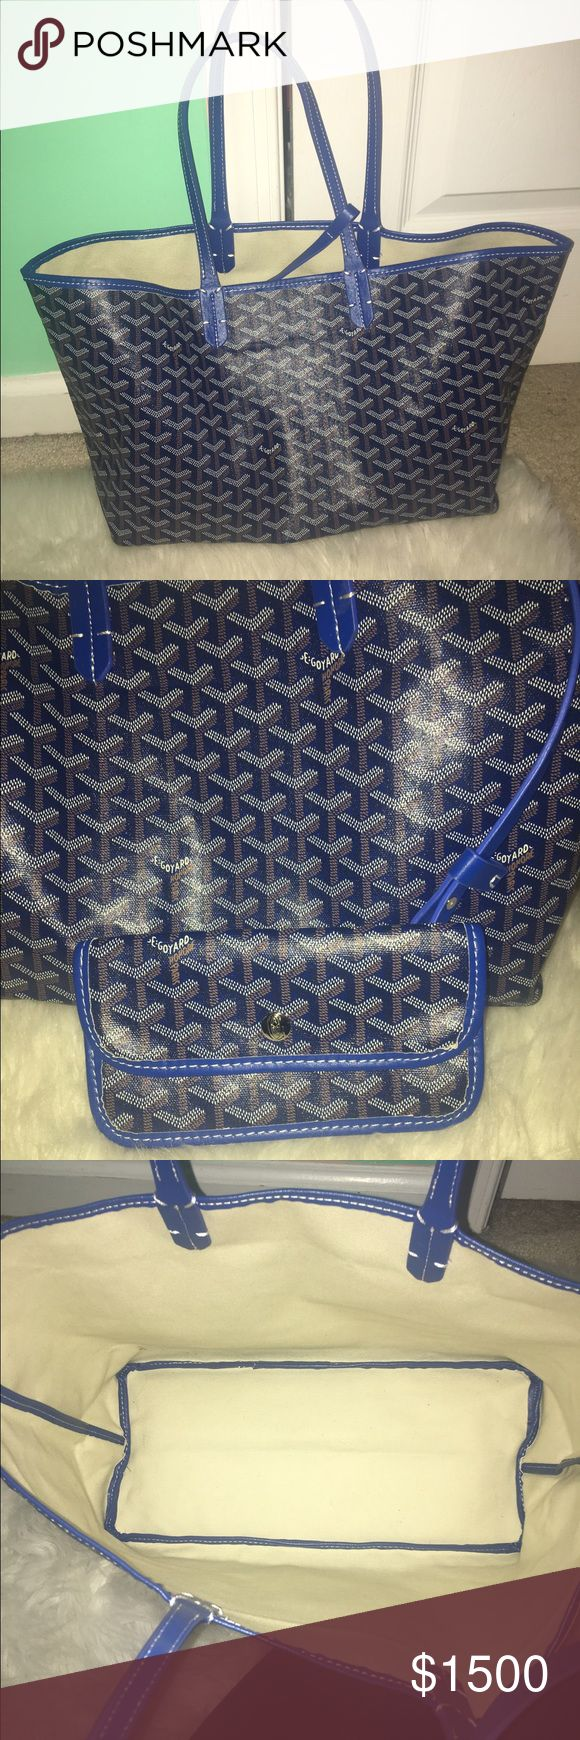 Goyard Tote Beautiful blue Goyard Tote in the large size. This bag is 100% authentic and in perfect condition! Price is firm!! Bags Totes